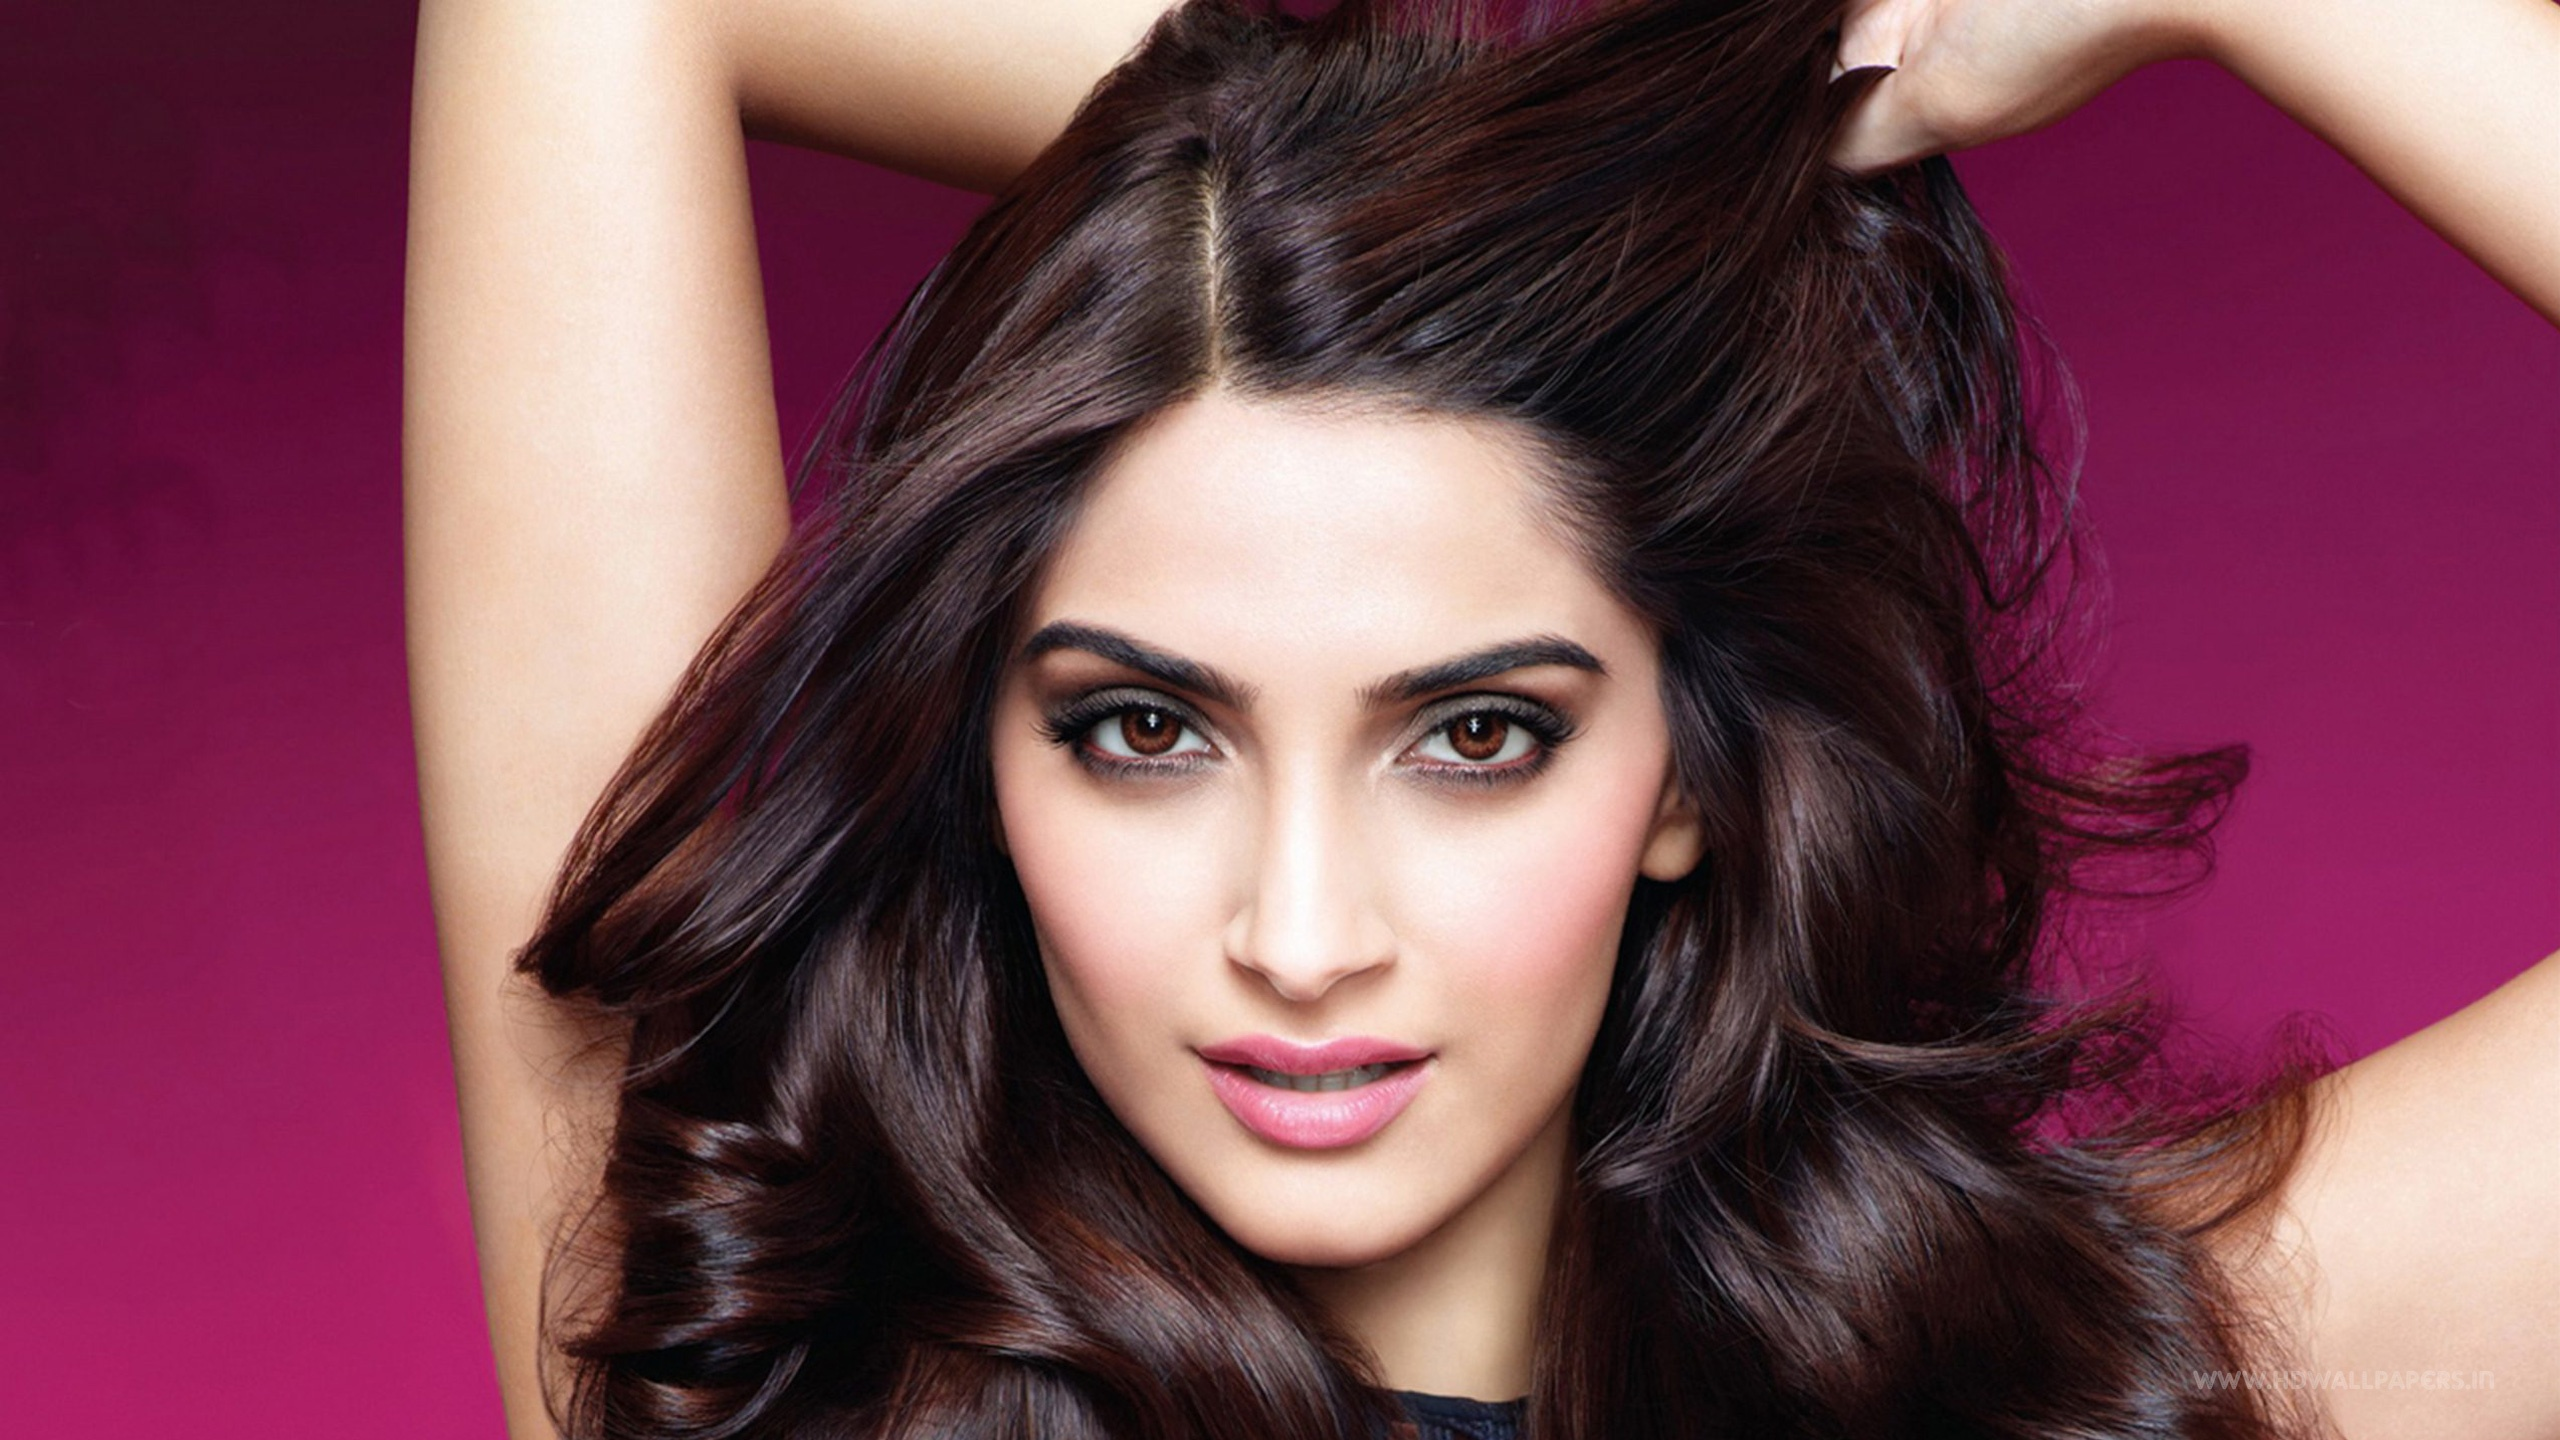 Sonam Kapoor India Wallpapers In Jpg Format For Free Download